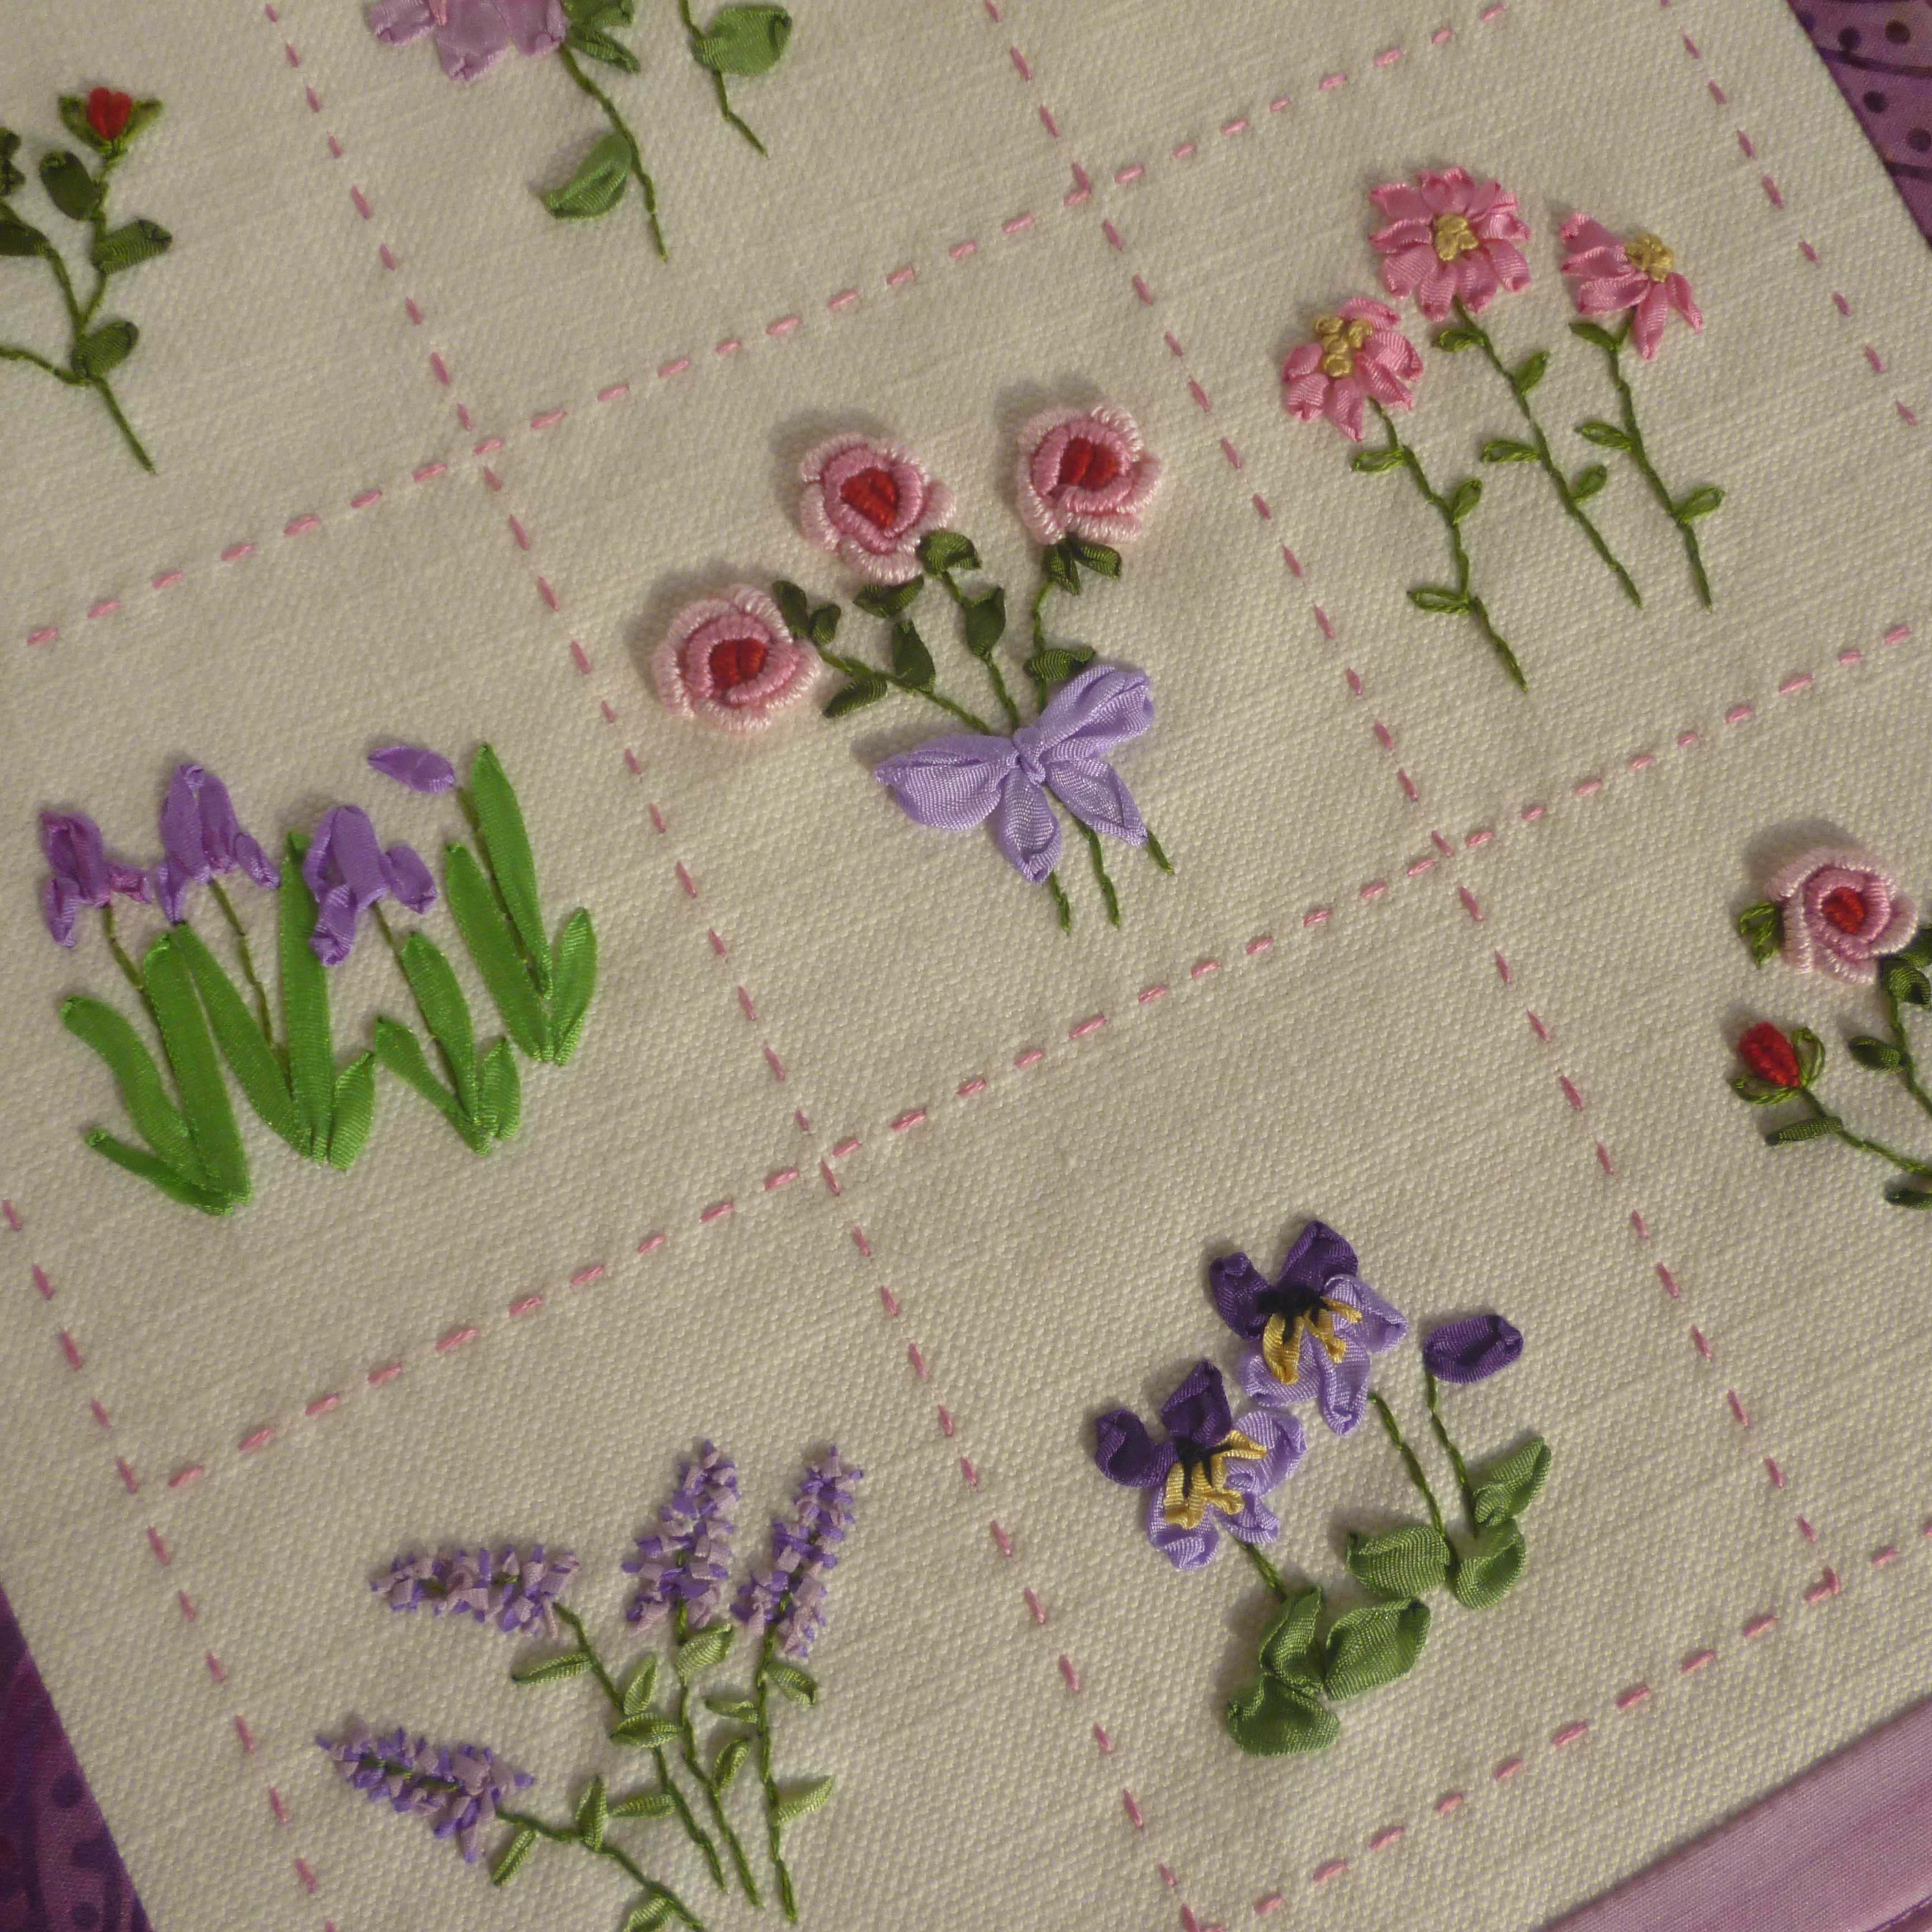 The Gallery For --u0026gt; Ribbon Embroidery Flower Garden